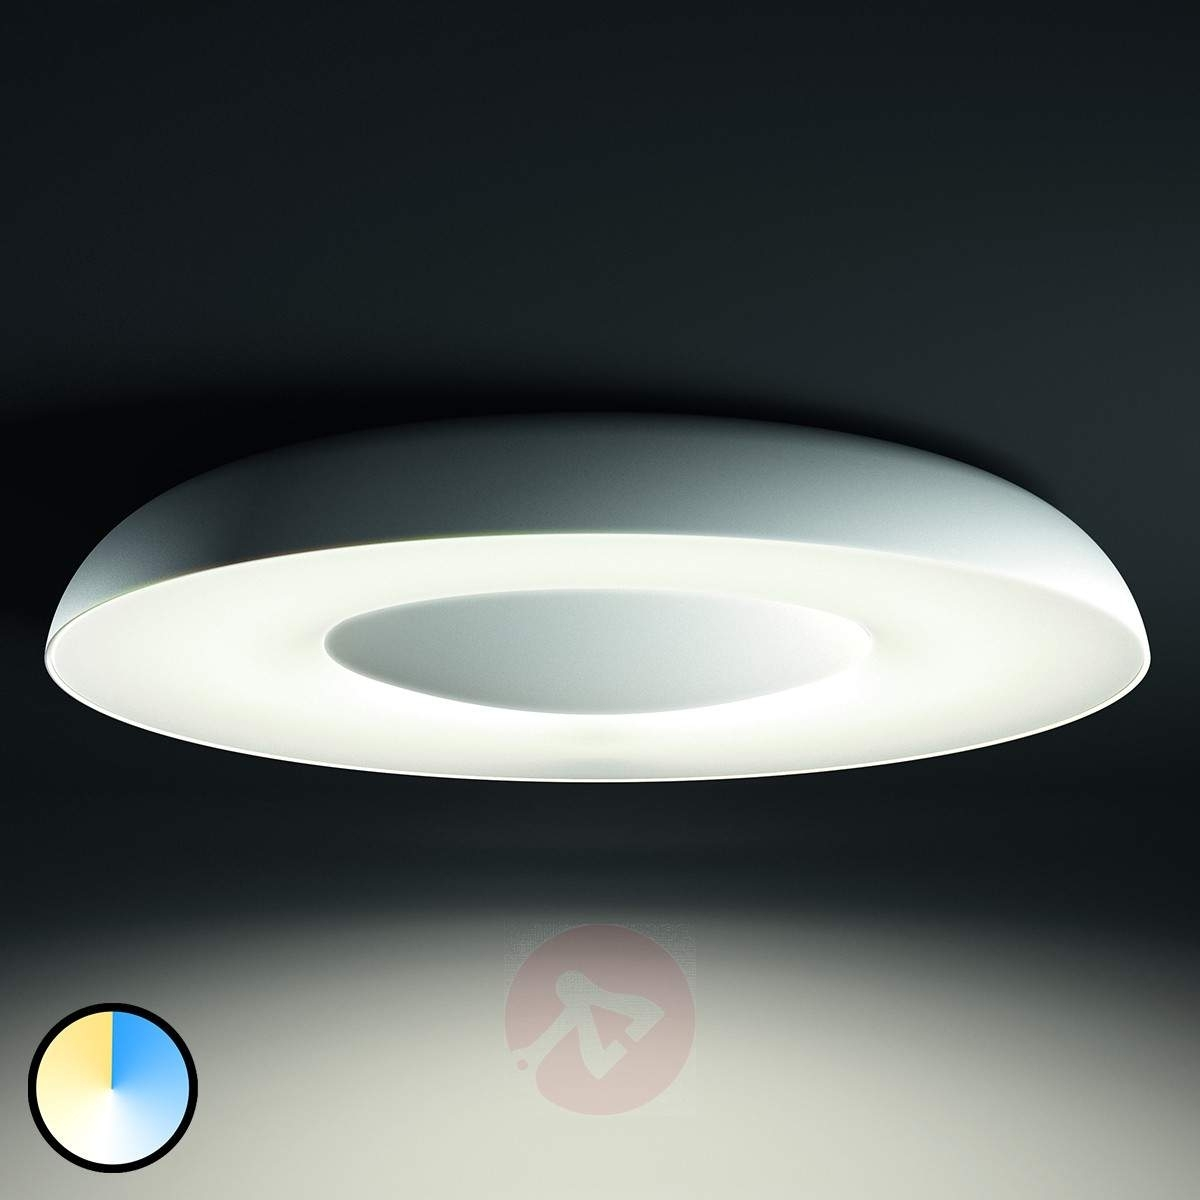 Inspiration about Philips Hue Led Ceiling Light Still In White | Lights.co.uk Regarding Philips Outdoor Ceiling Lights (#15 of 15)